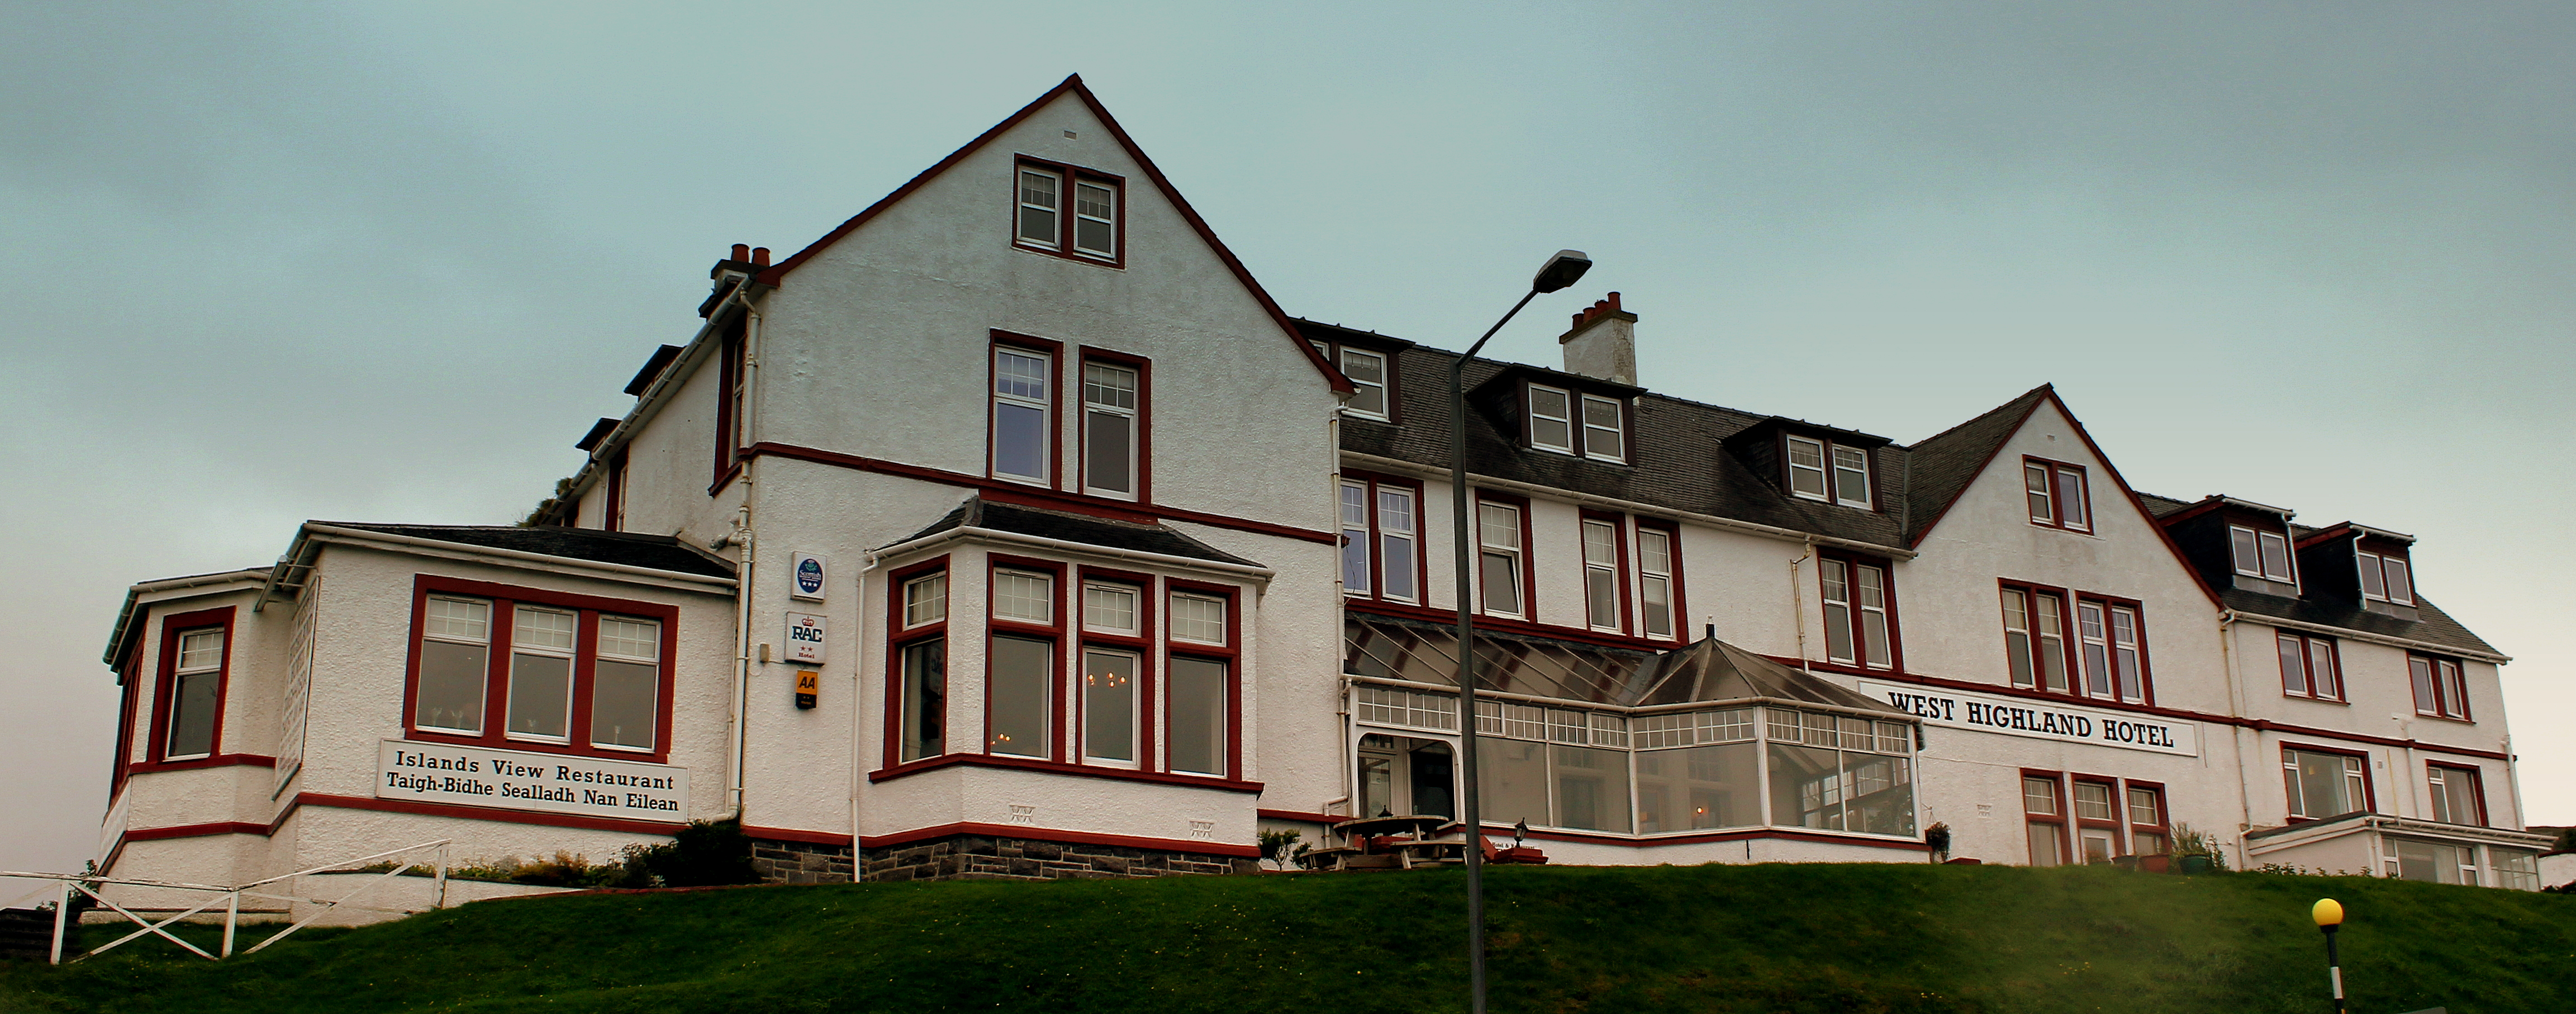 File West Highland Hotel At Mallaig Scotland Sep 2017 9687083908 Jpg